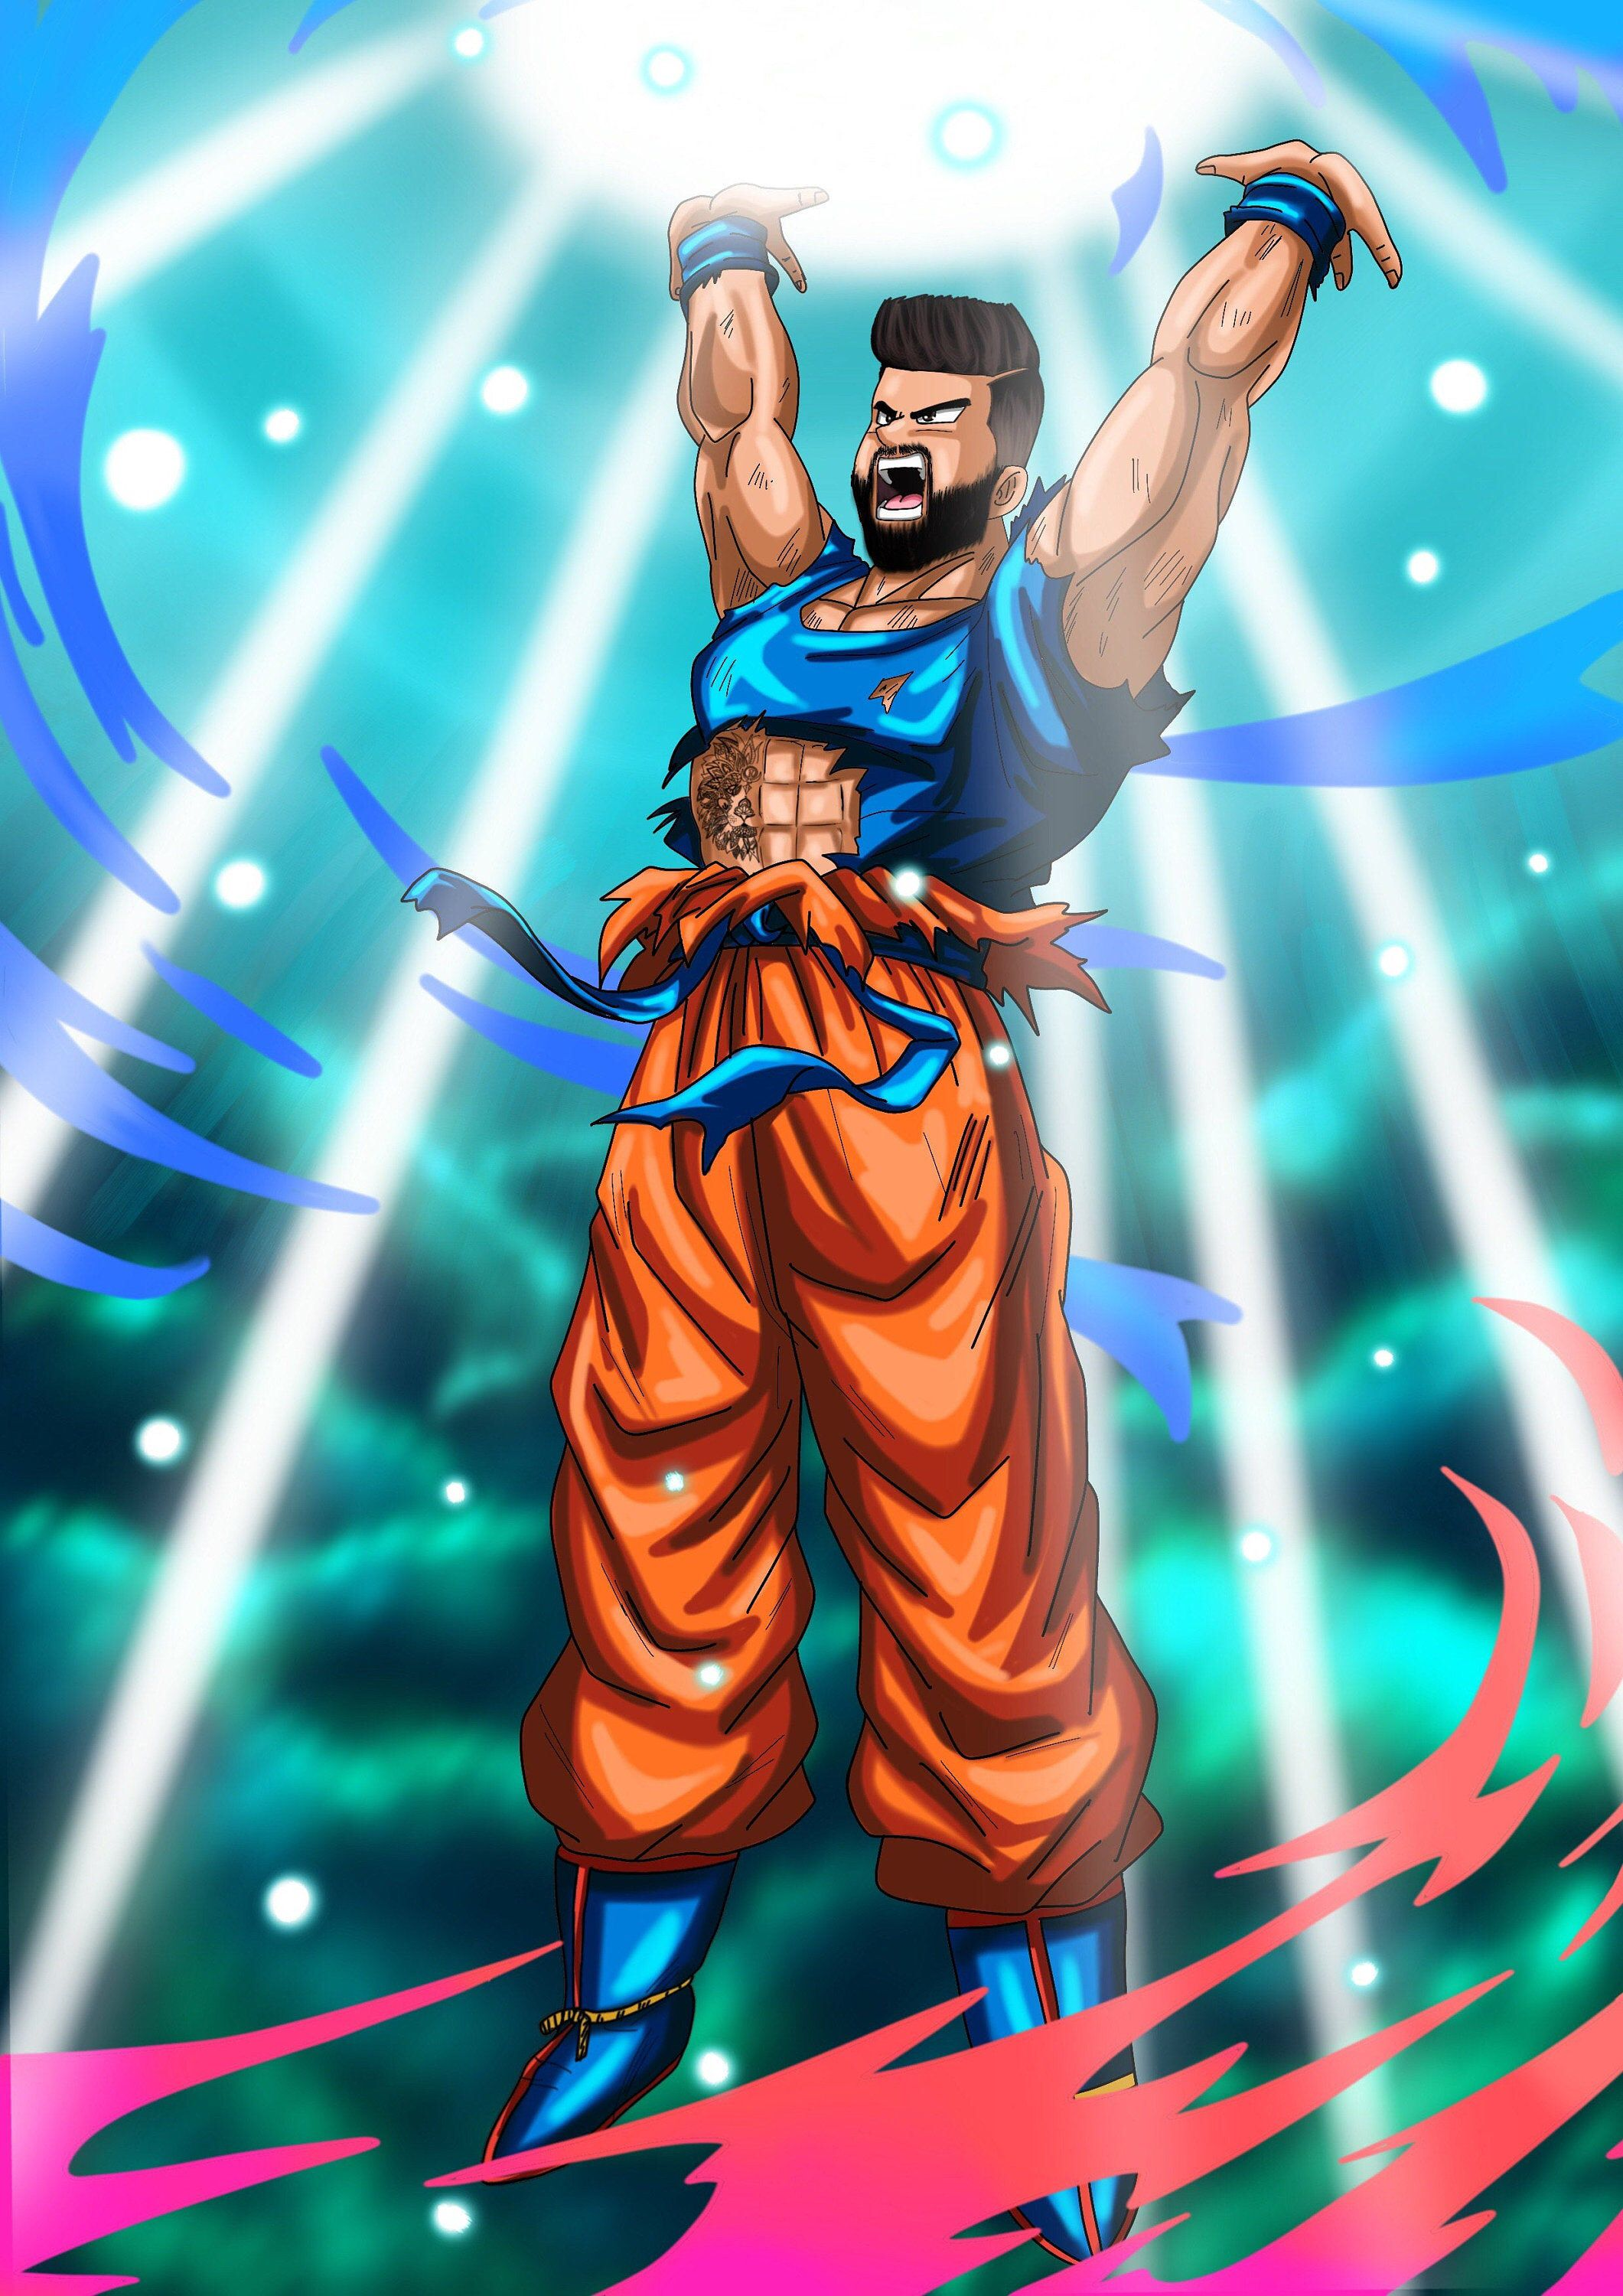 Dragon Ball Z Portrait Like Etsy Custom Cartoons Dragon Ball Z Goku